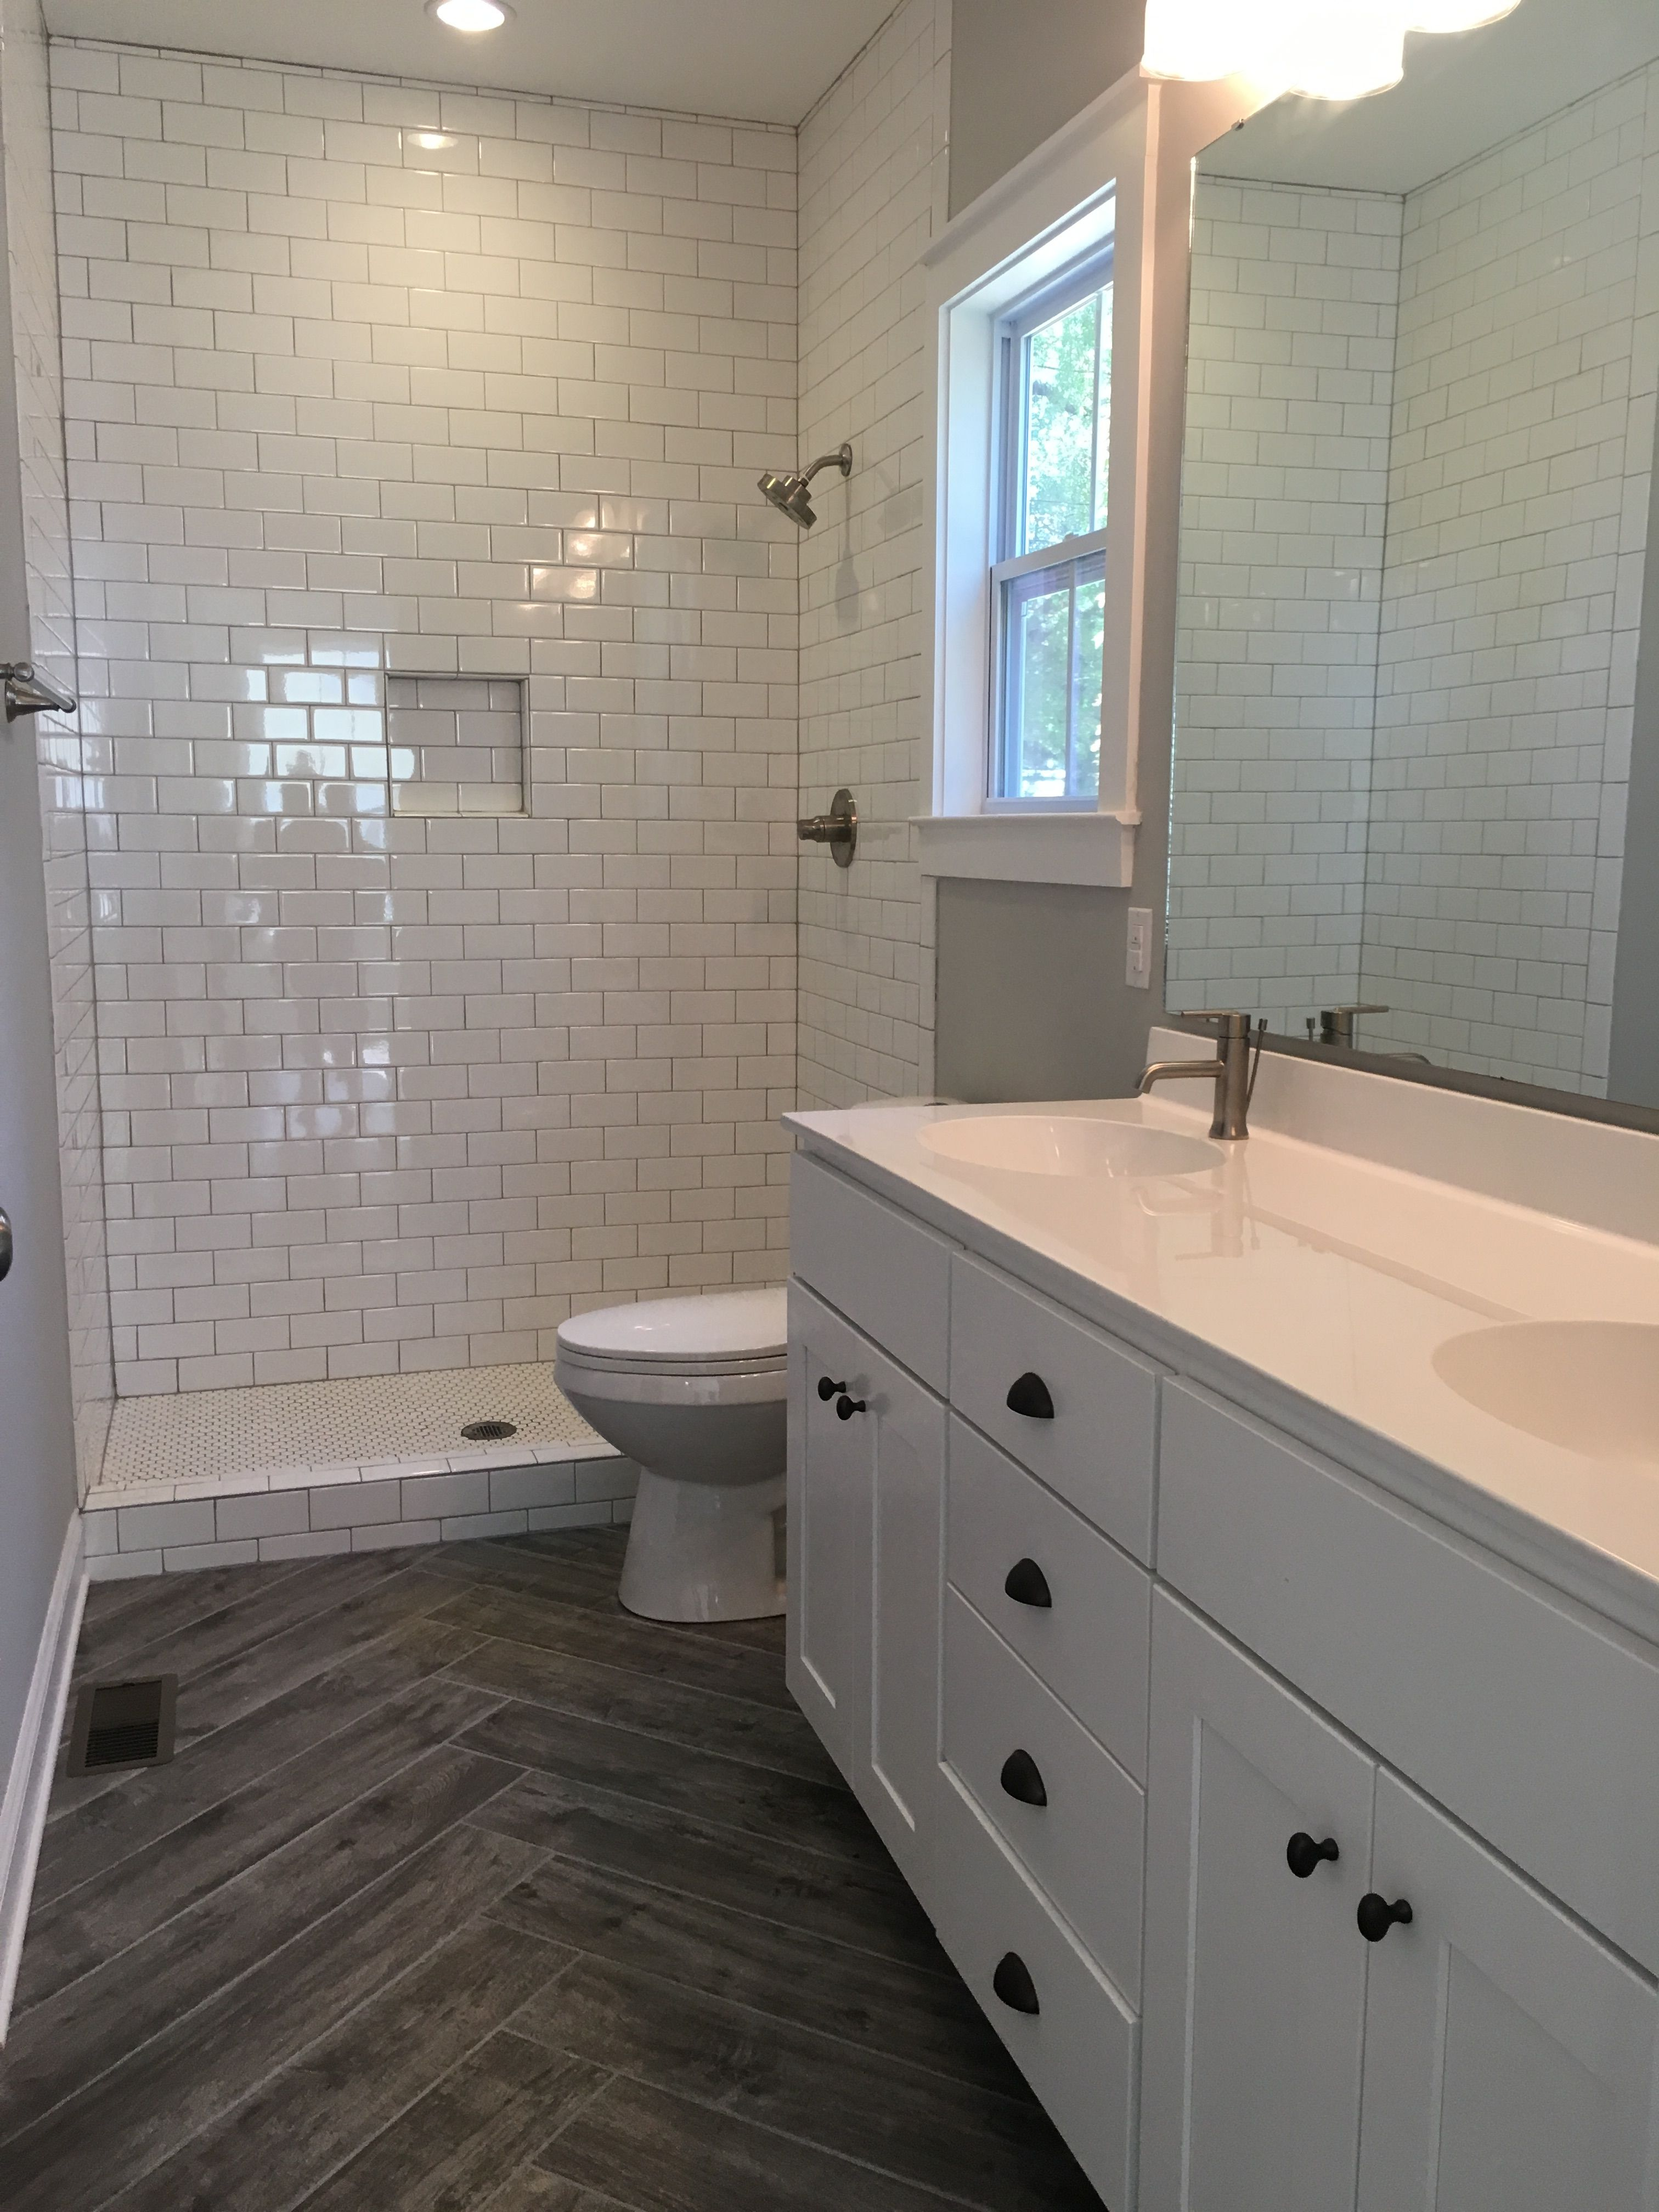 30 Facts Shower Room Ideas Everyone Thinks Are True Bathroom Remodel Shower Bathroom Remodel Master Small Bathroom Remodel